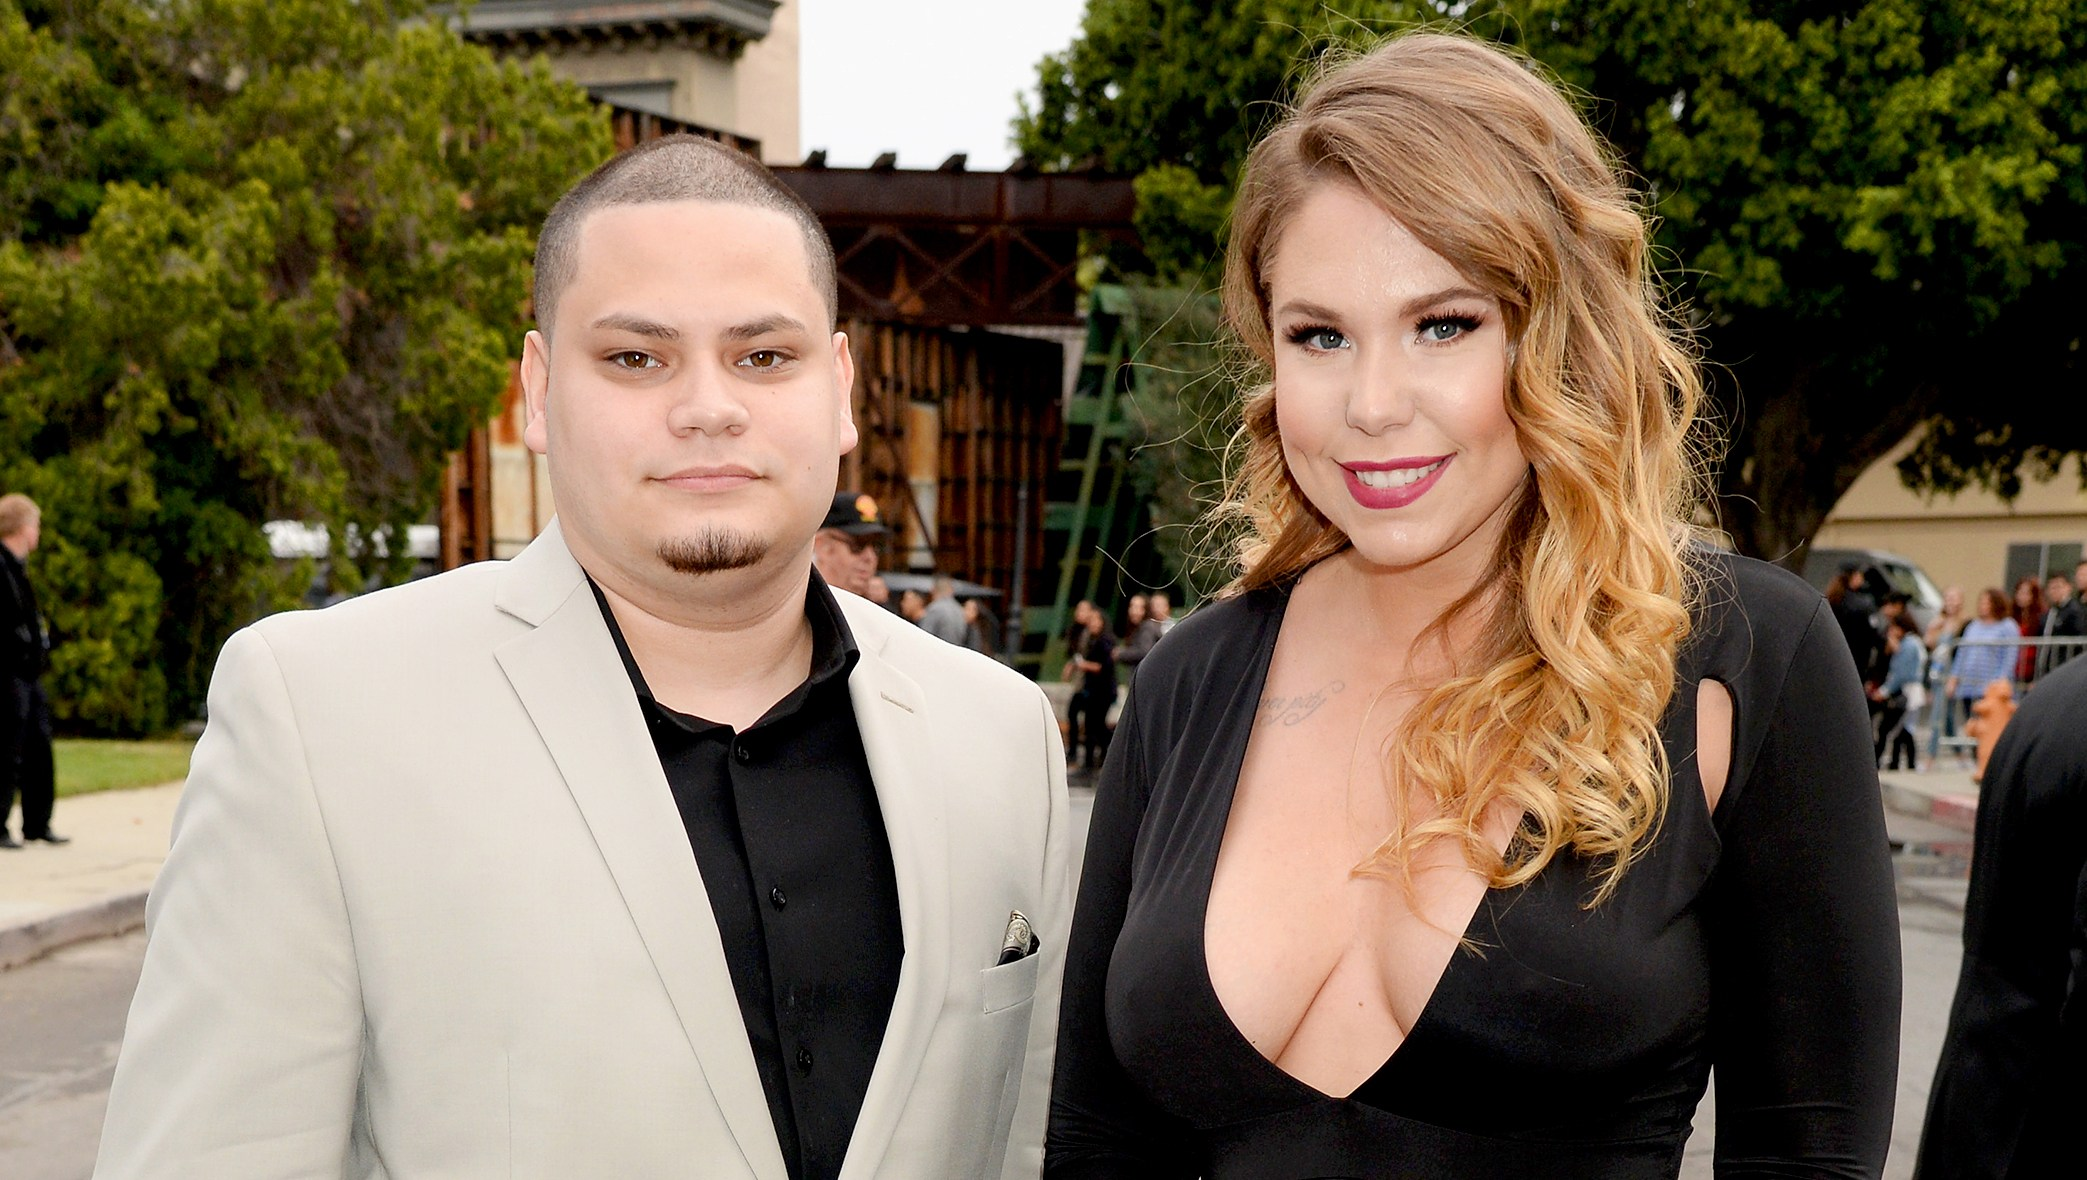 Kailyn-Lowry-Hashes-Out-Her-Child-Support-Drama-With-Jo-Rivera